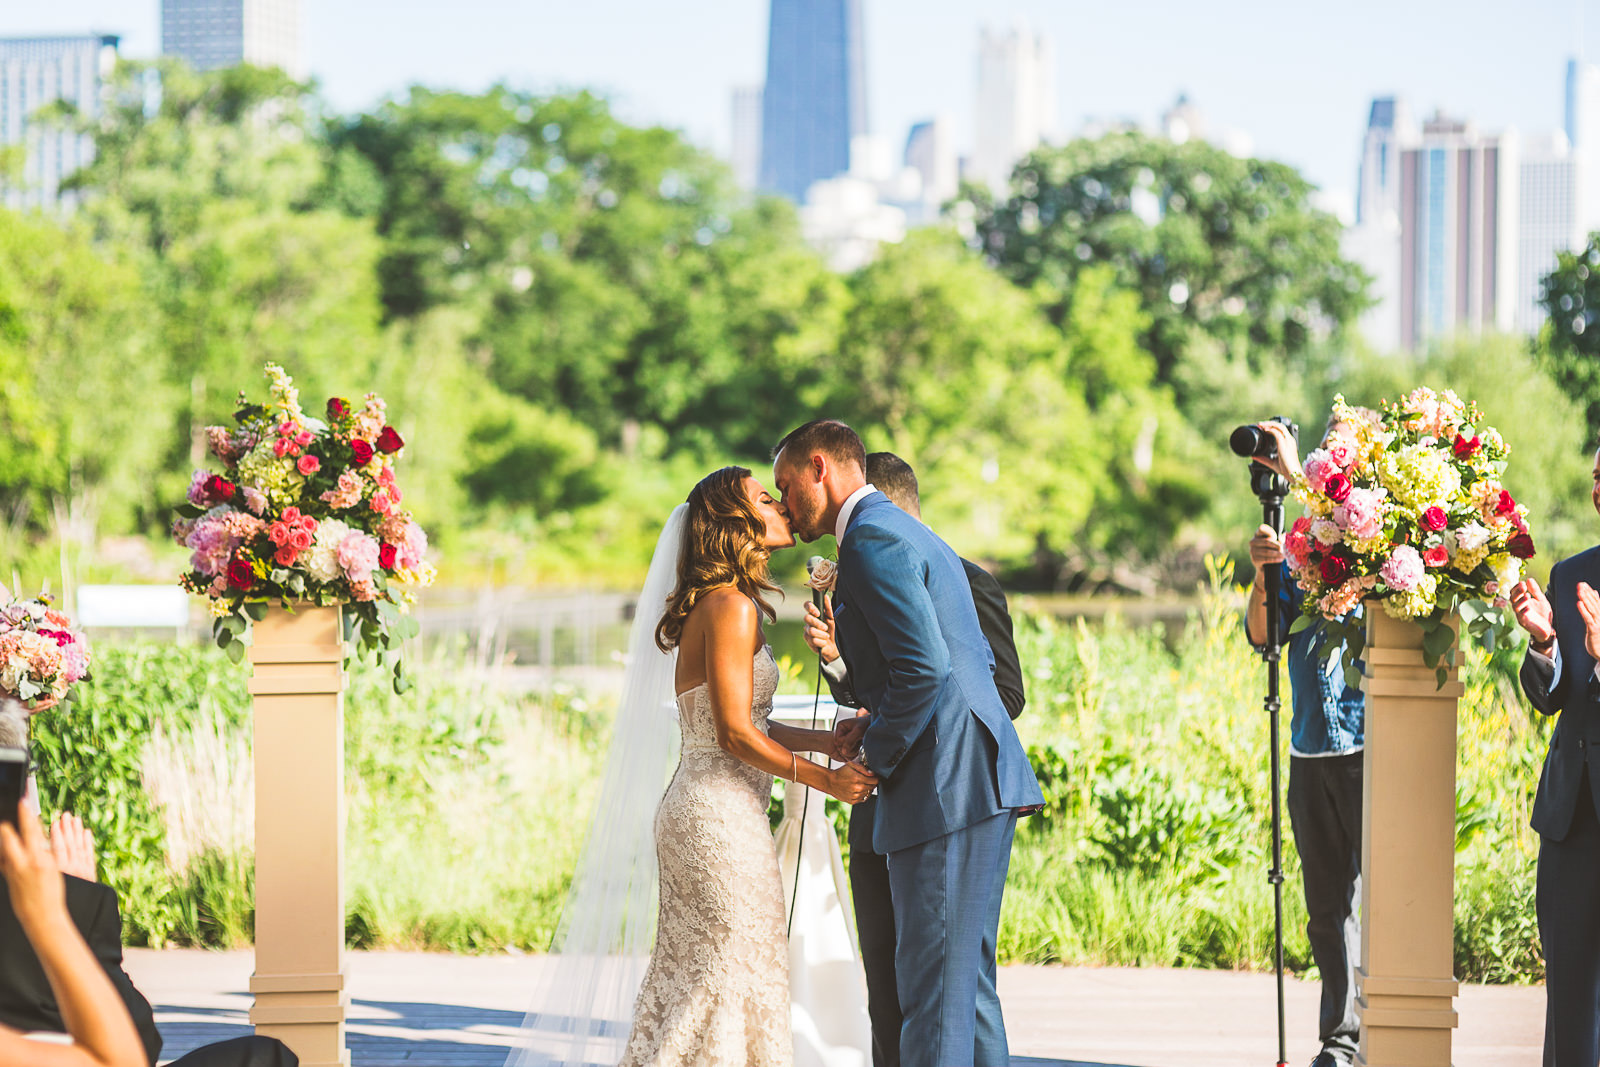 47 first kiss - Natalie + Alan // Chicago Wedding Photographer at Cafe Brauer